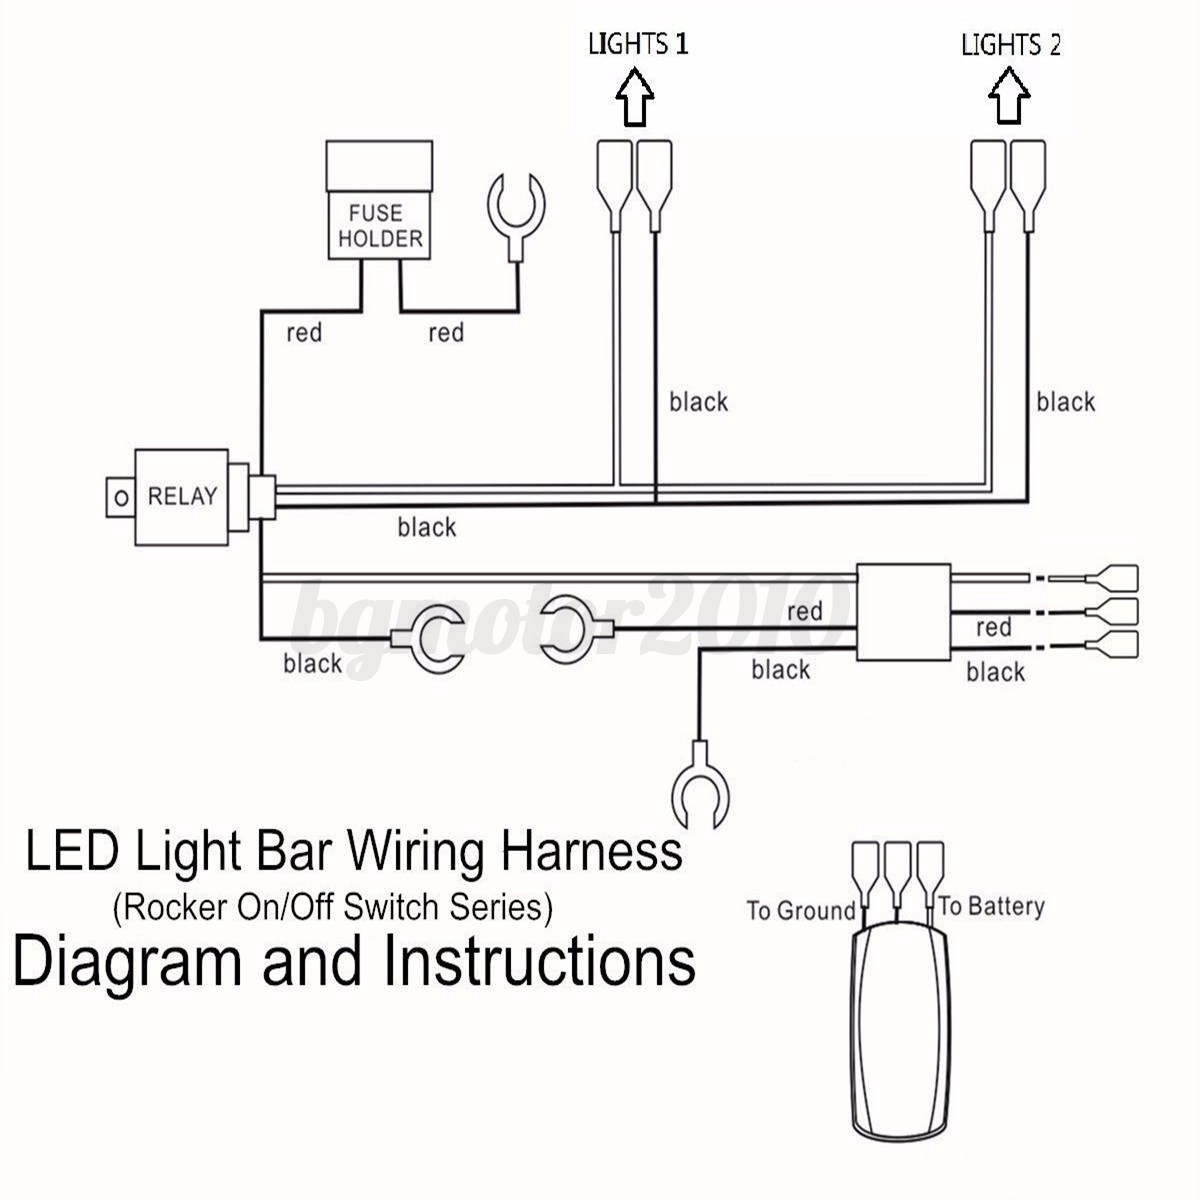 hight resolution of led light bar wiring harness diagram diagram stream mictuning led light bar wiring harness diagram led